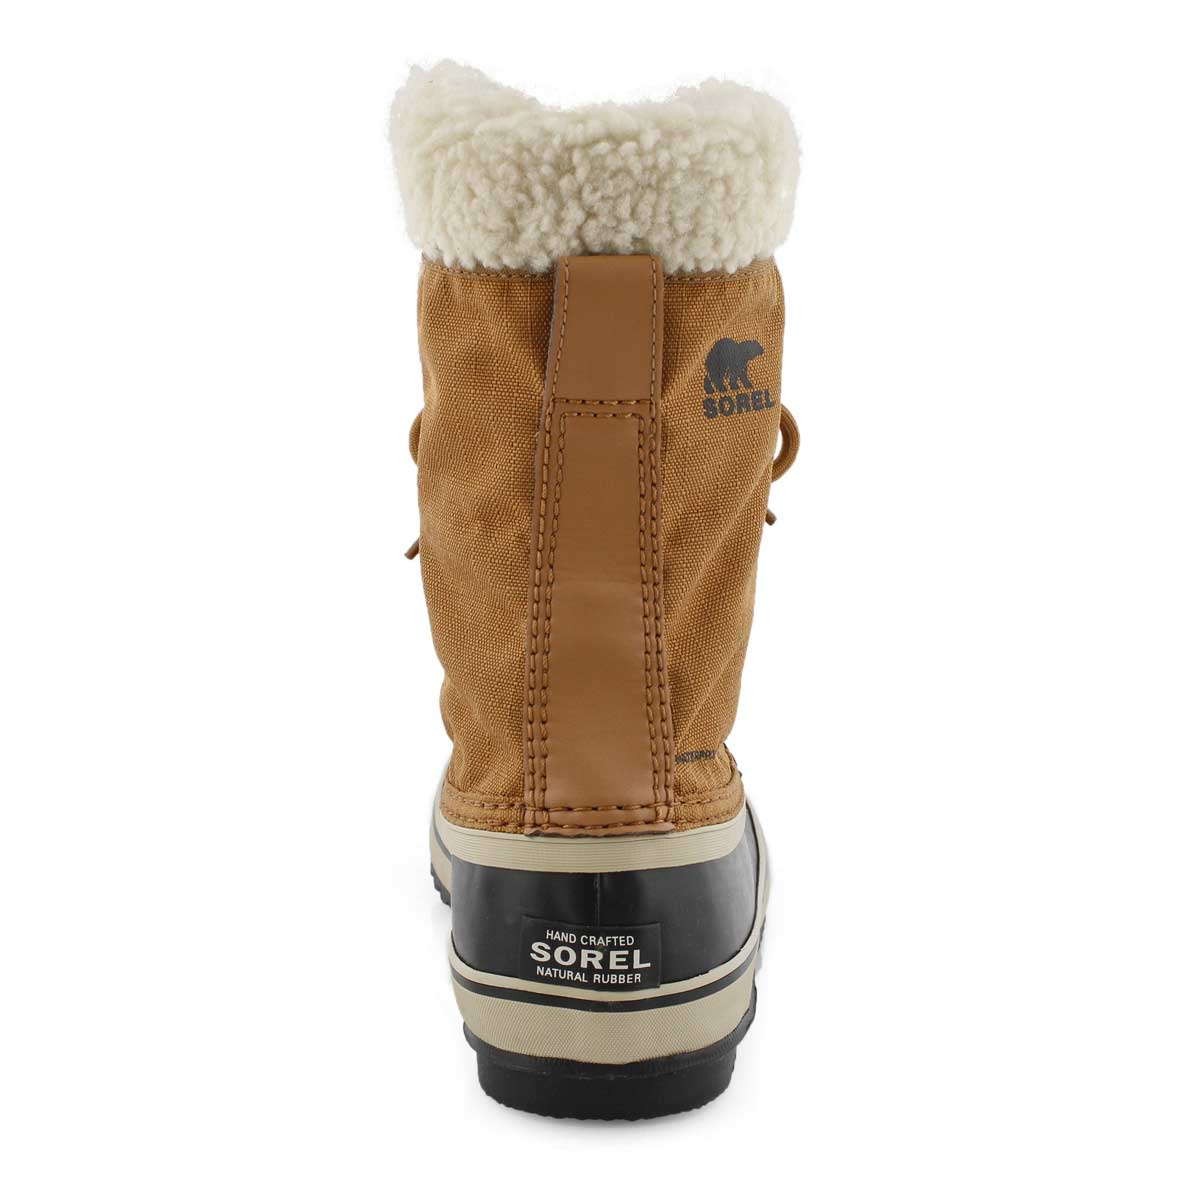 Lds Winter Carnival cml brn wp wntr boot